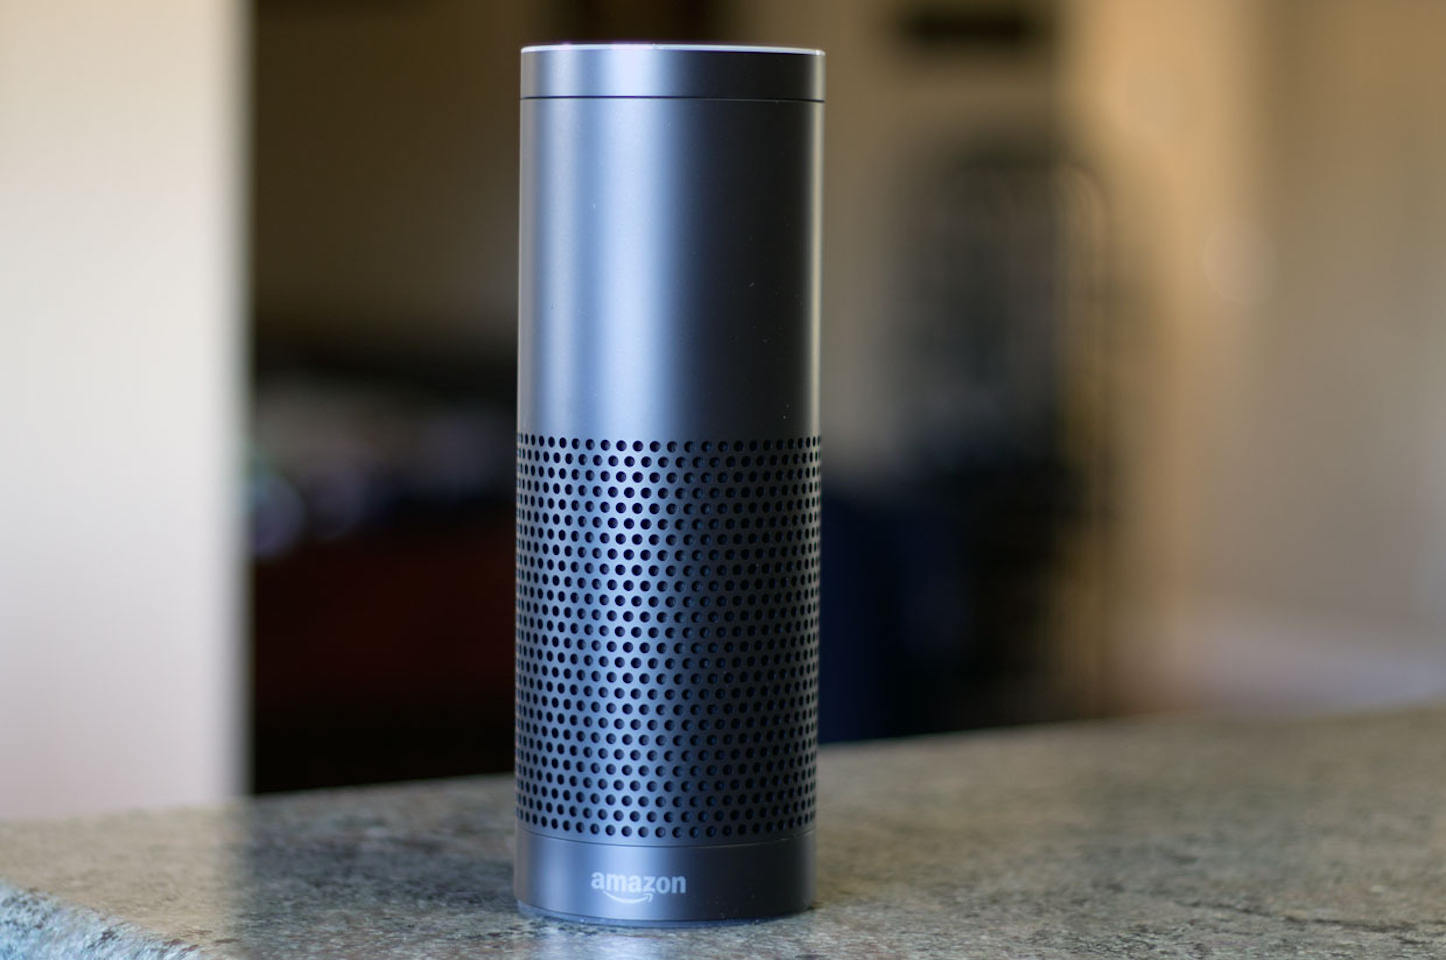 Amazon Echo like device